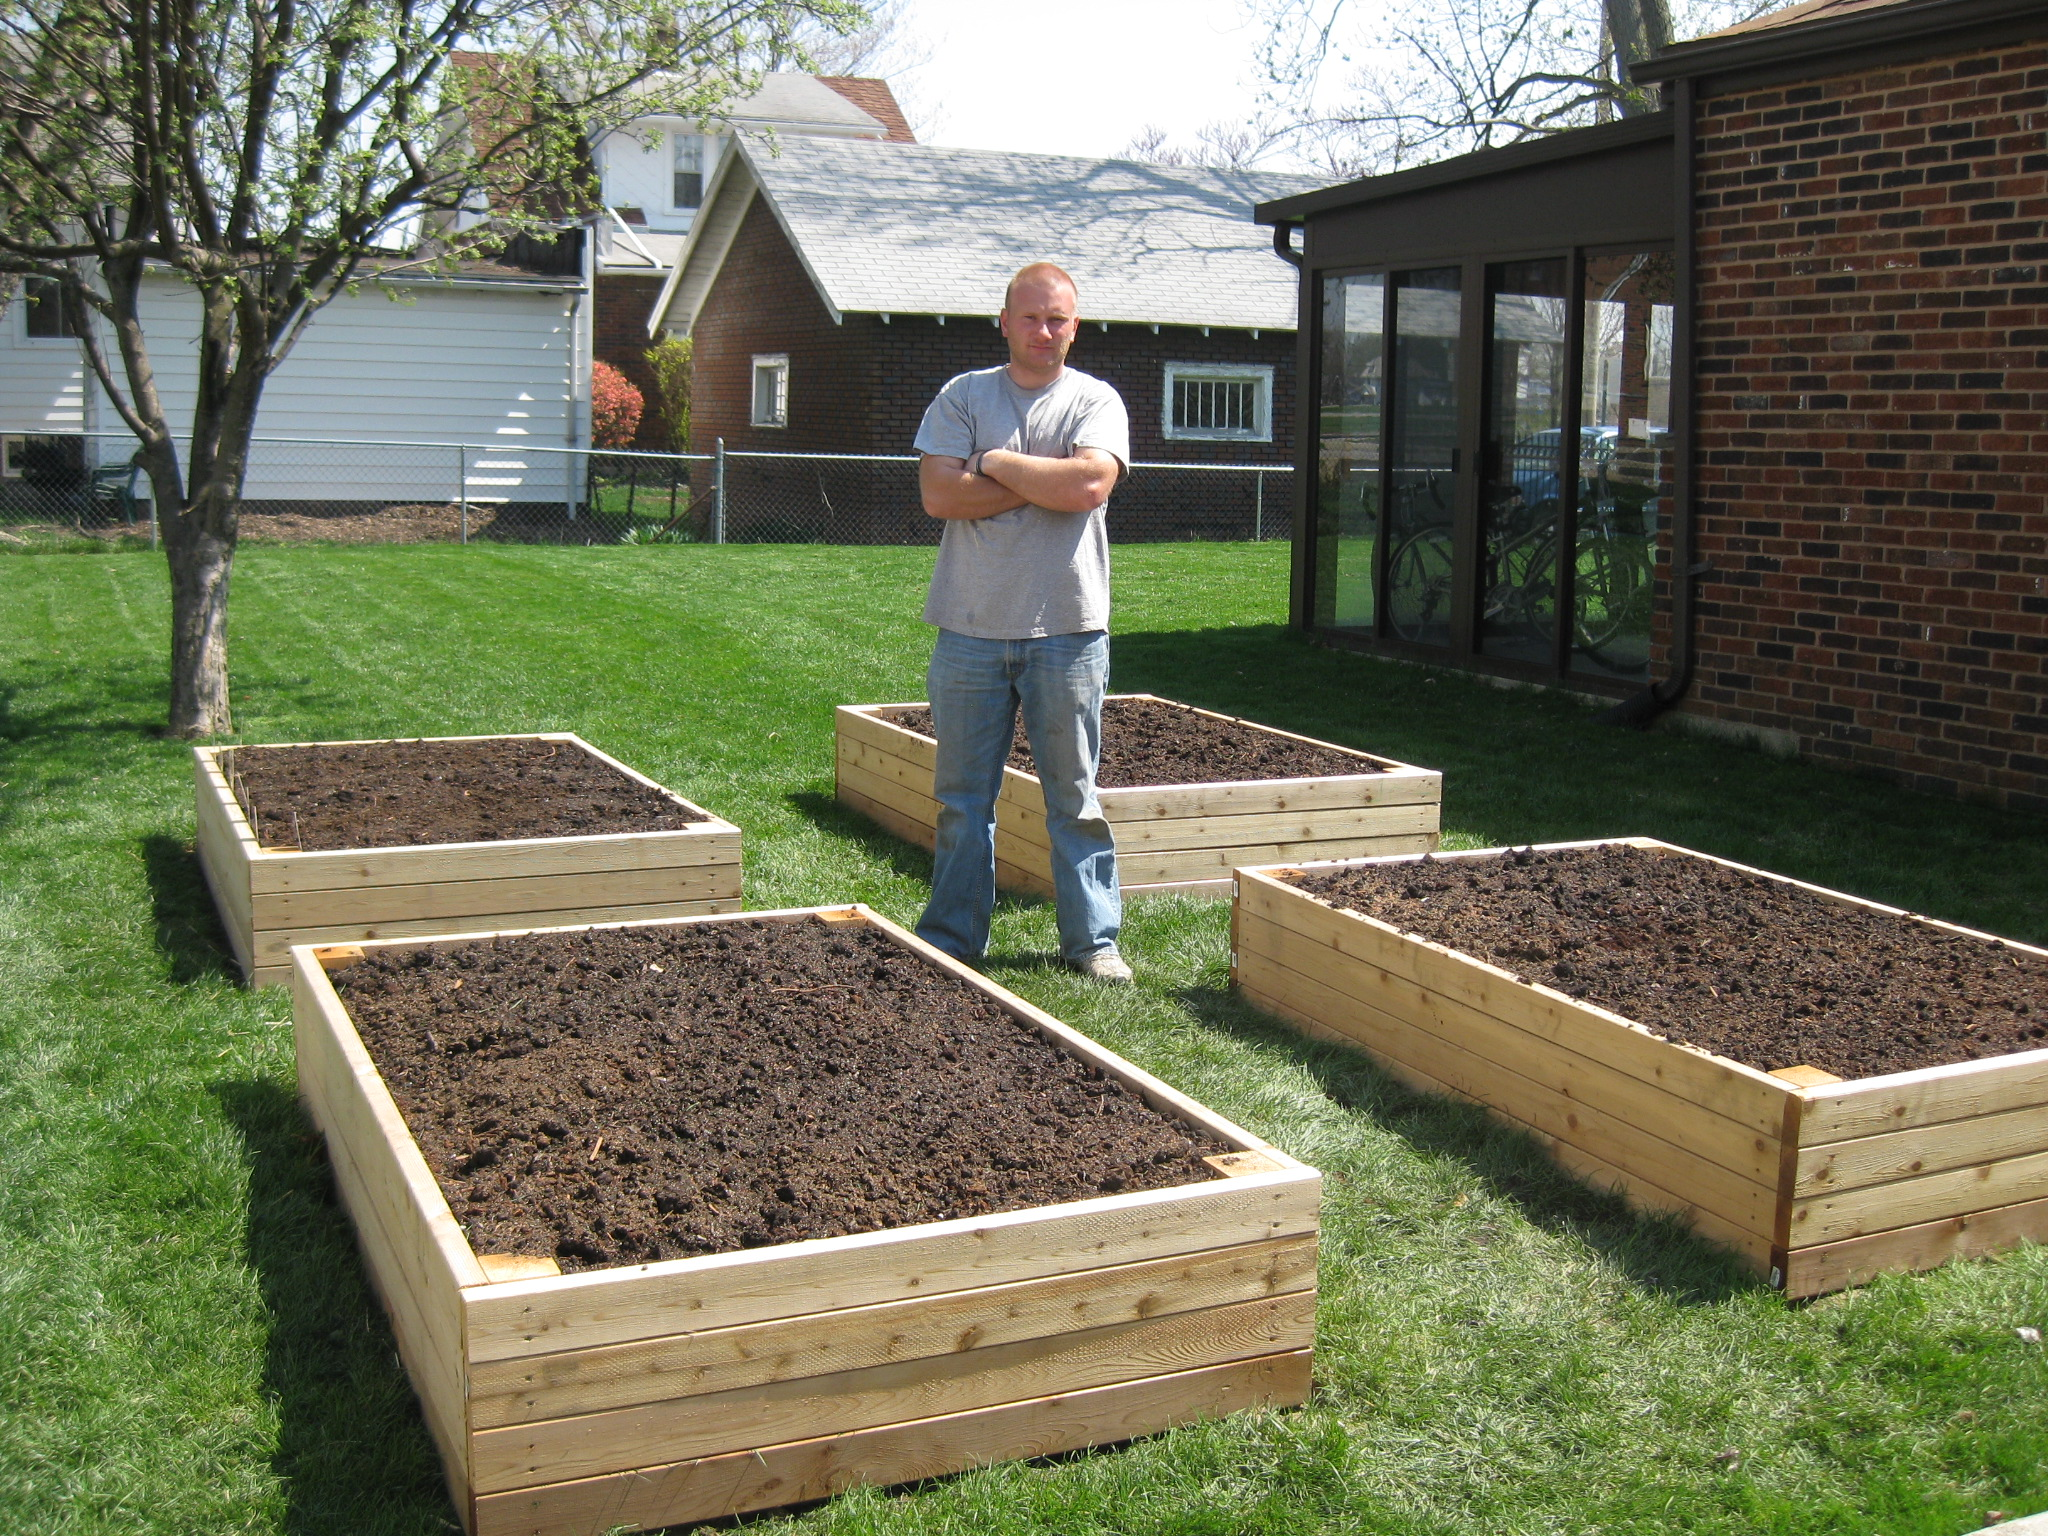 Superiority of the raised garden beds over row gardening